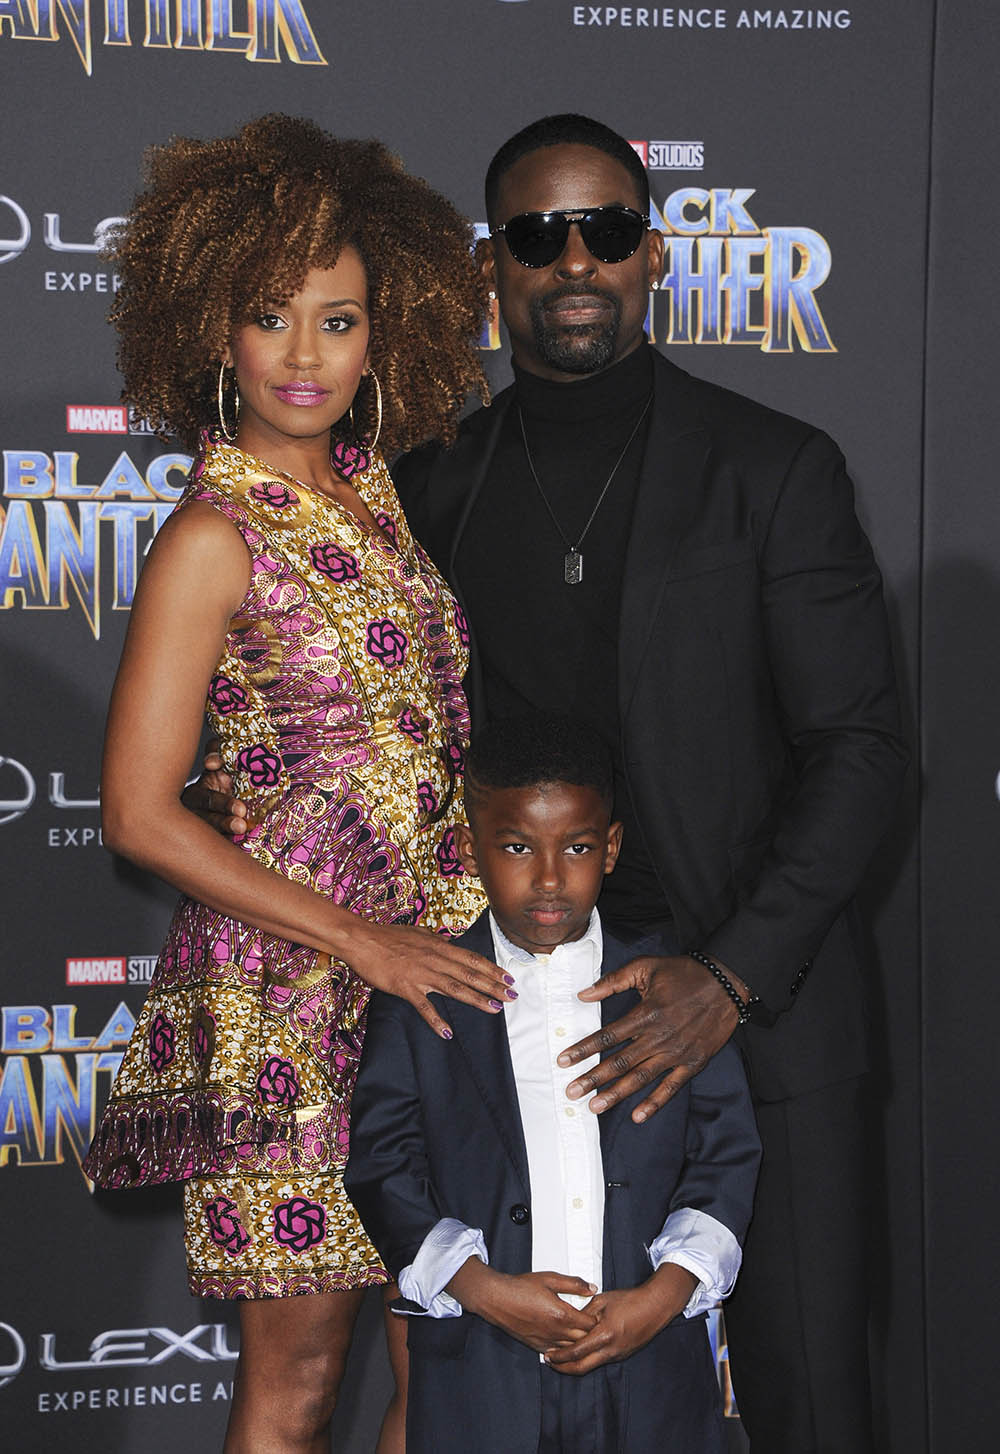 Sterling K Brown Amp Family At Film Premiere Of Black